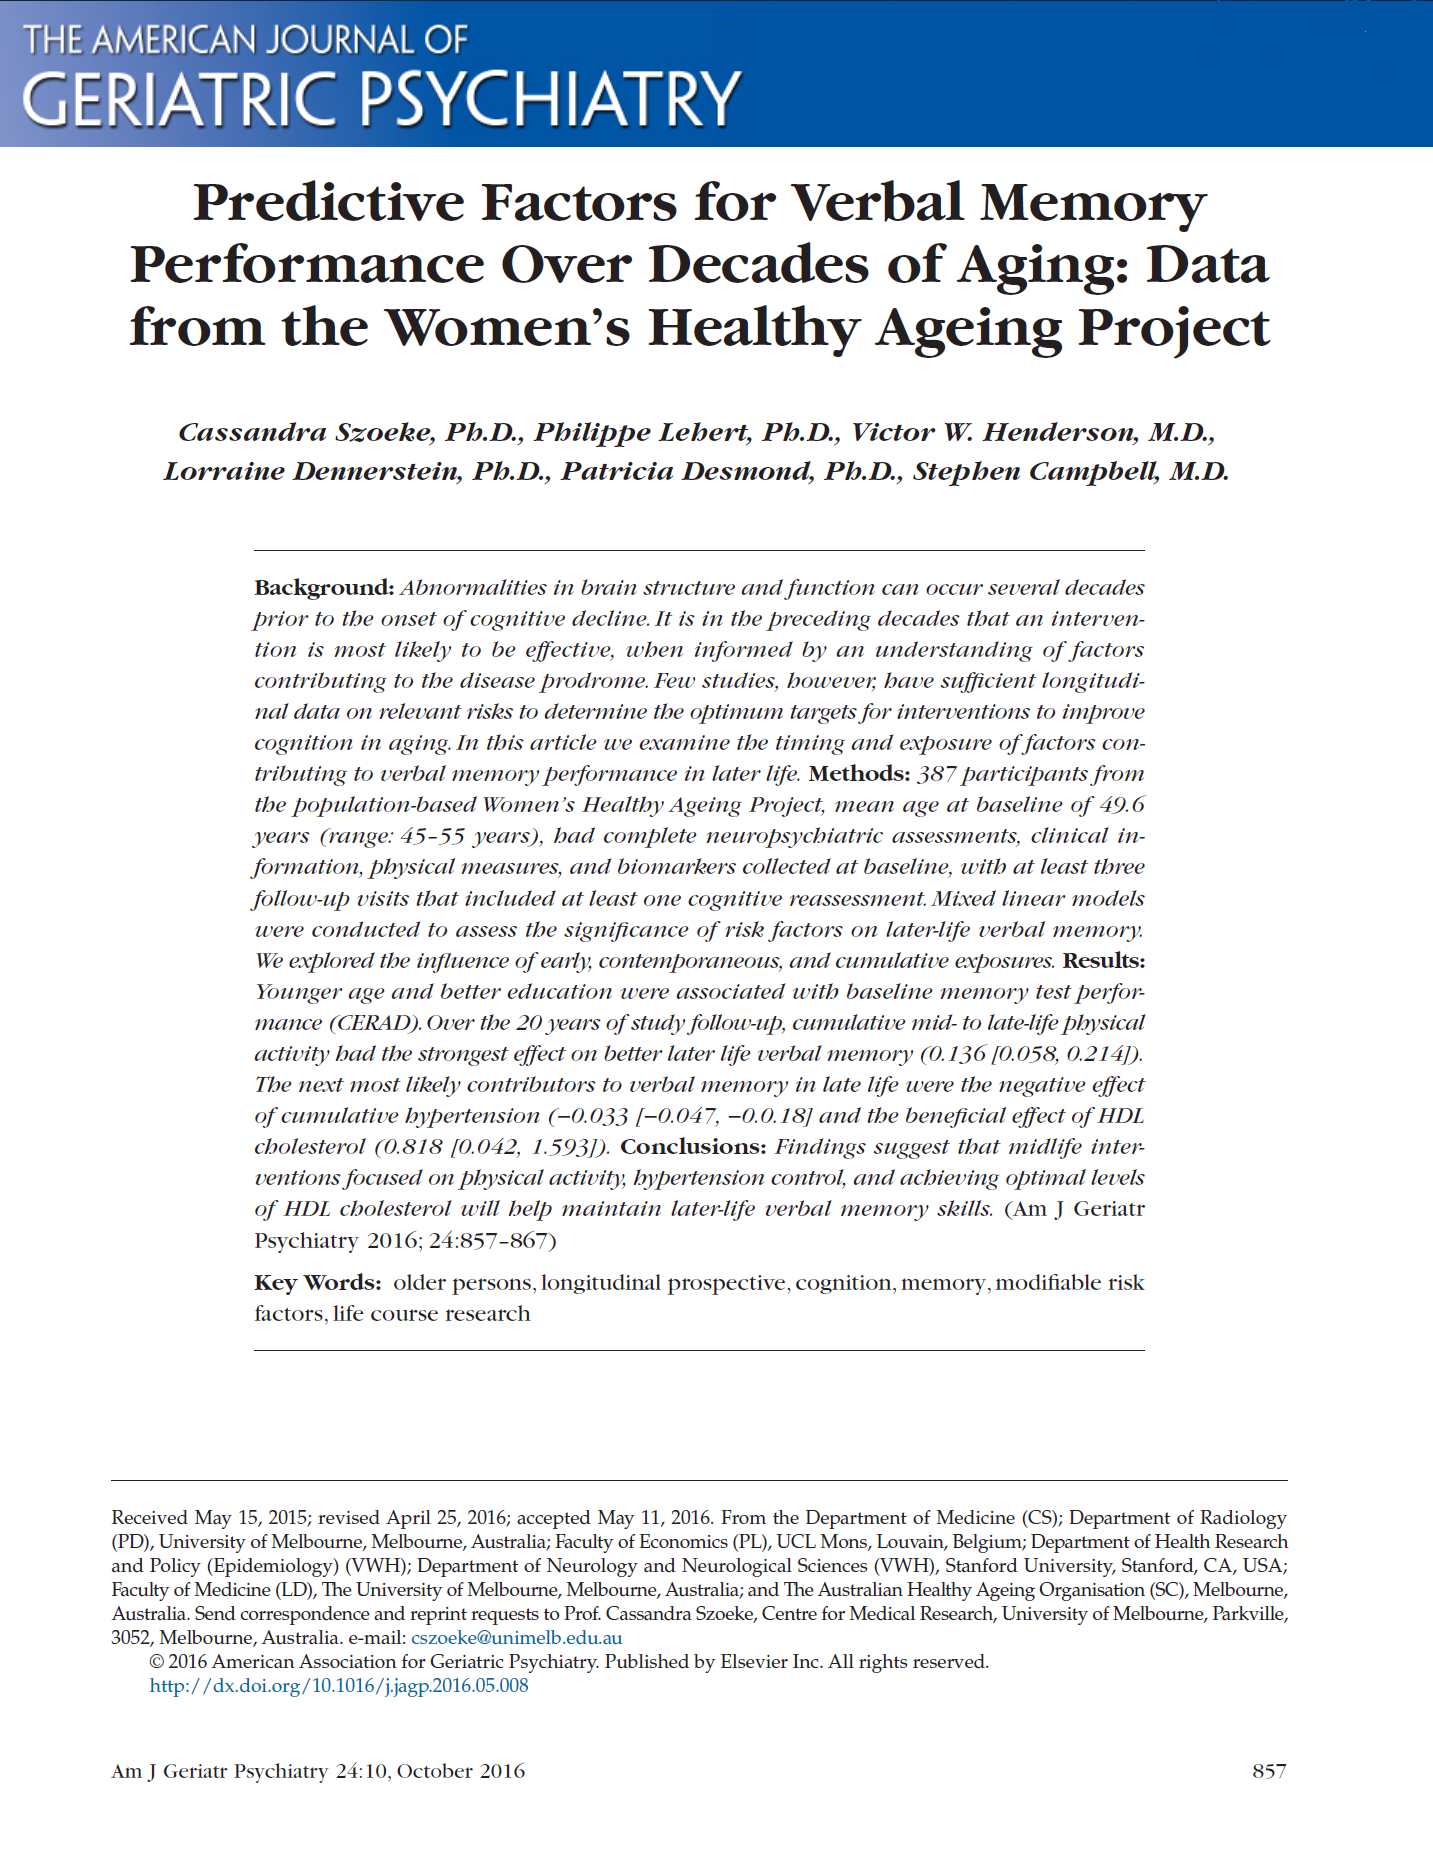 Predictive factors for verbal memory performance over decades of aging - This research examining the impact and timing of modifiable risk factors on memory performance in women from midlife to later life,over a period of 20 years (from 45-55 years). Greater physical activity and and HDL cholesterol levels had a positive effect on verbal memory performance in later life, with hypertension having a negative effect. These factors were found to have a cumulative effect, showing that a life-course approach to interventions for memory are warranted.Citation: Szoeke, C., et al (2016). Predictive factors for verbal memory performance over decades of aging: Data from the Women's Healthy Ageing Project.American Journal of Geriatric Psychiatry, 24(10), 857-867. doi:10.1016/j.jagp.2016.05.008